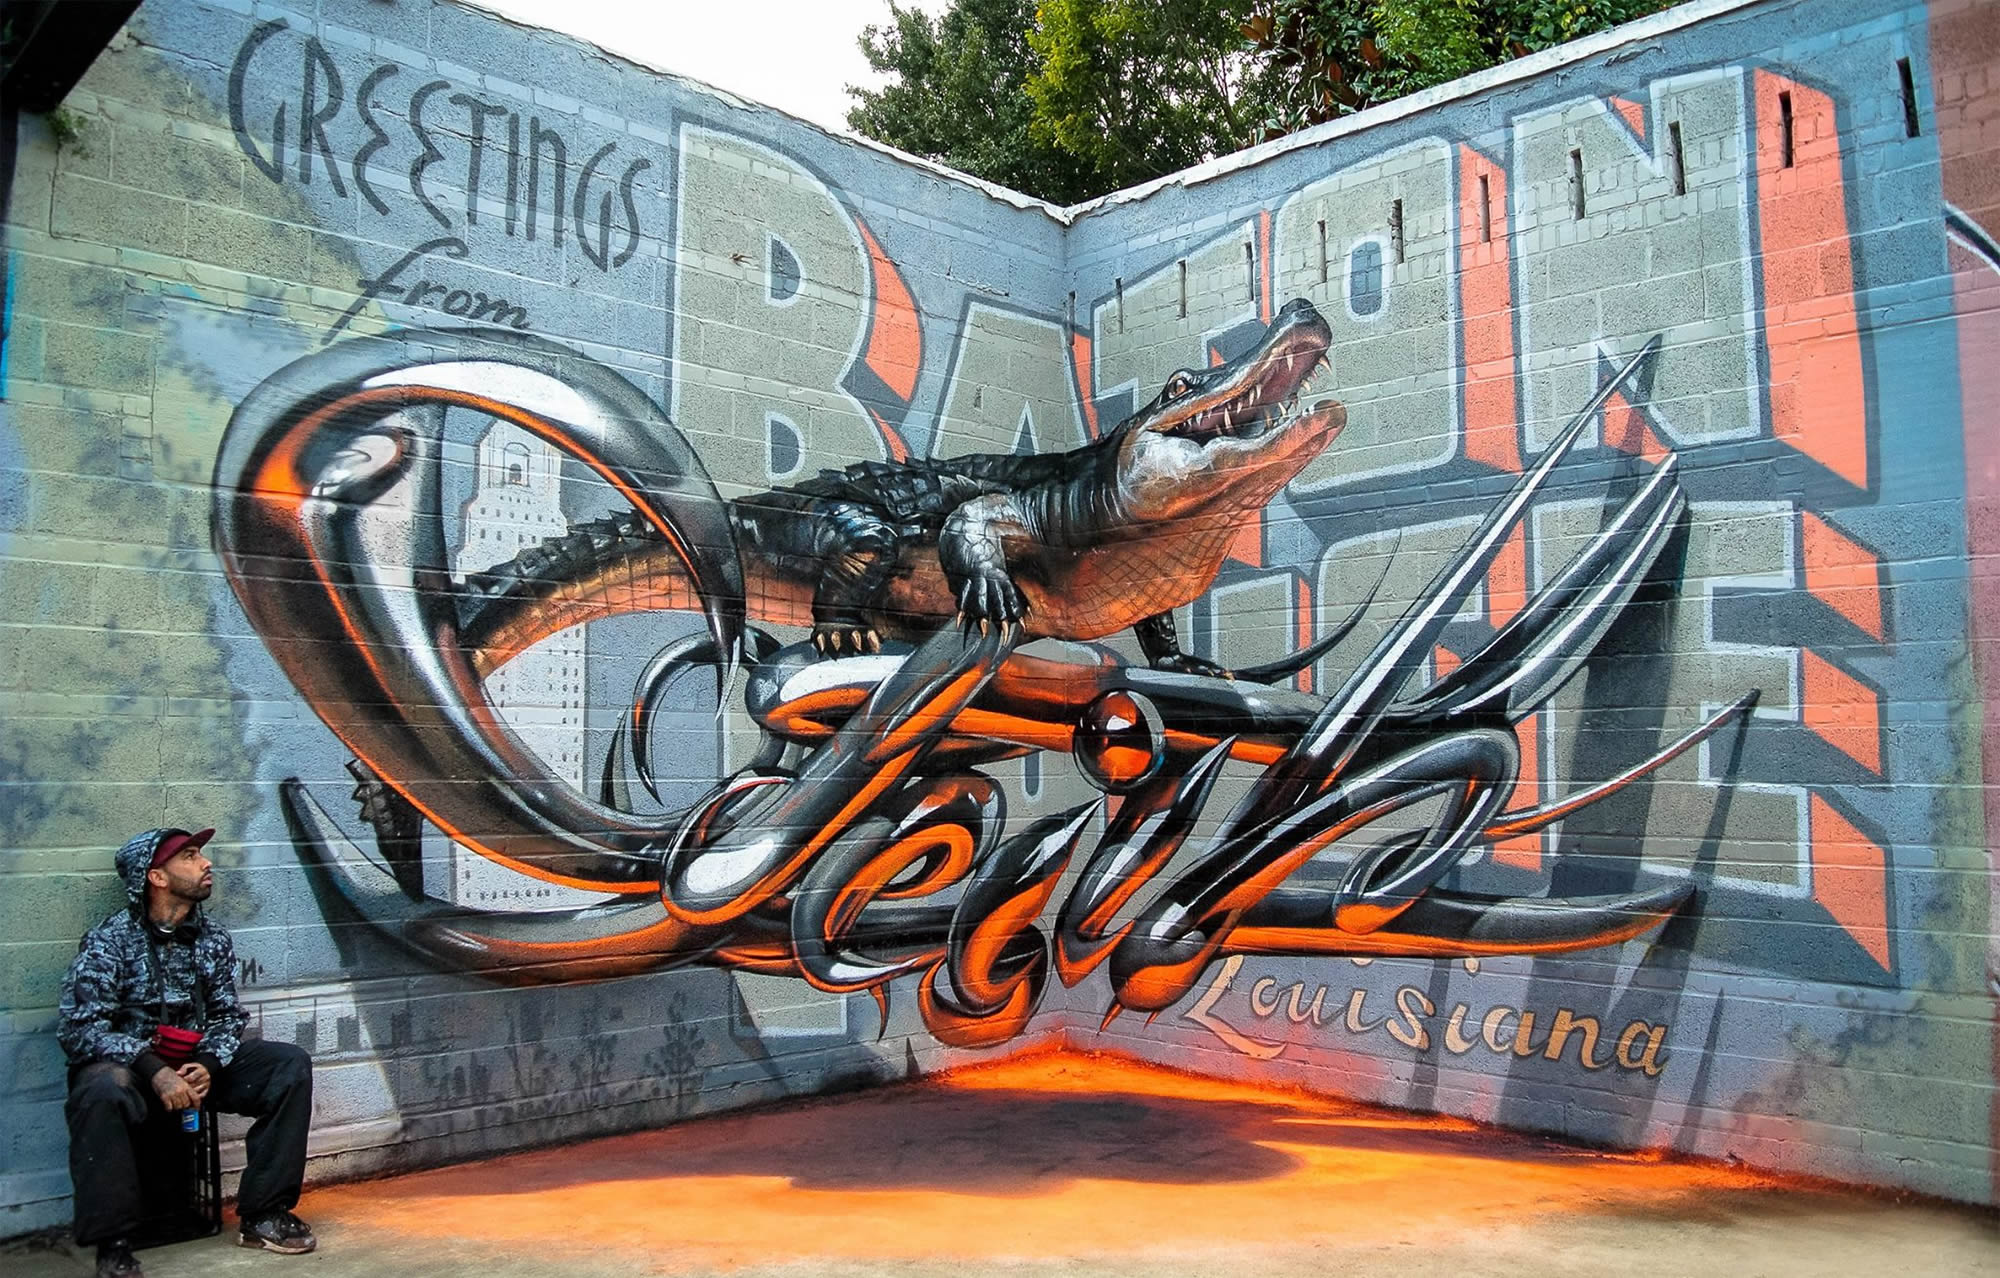 odeith letters on wall, aligator, 3d graffiti, anamorphic